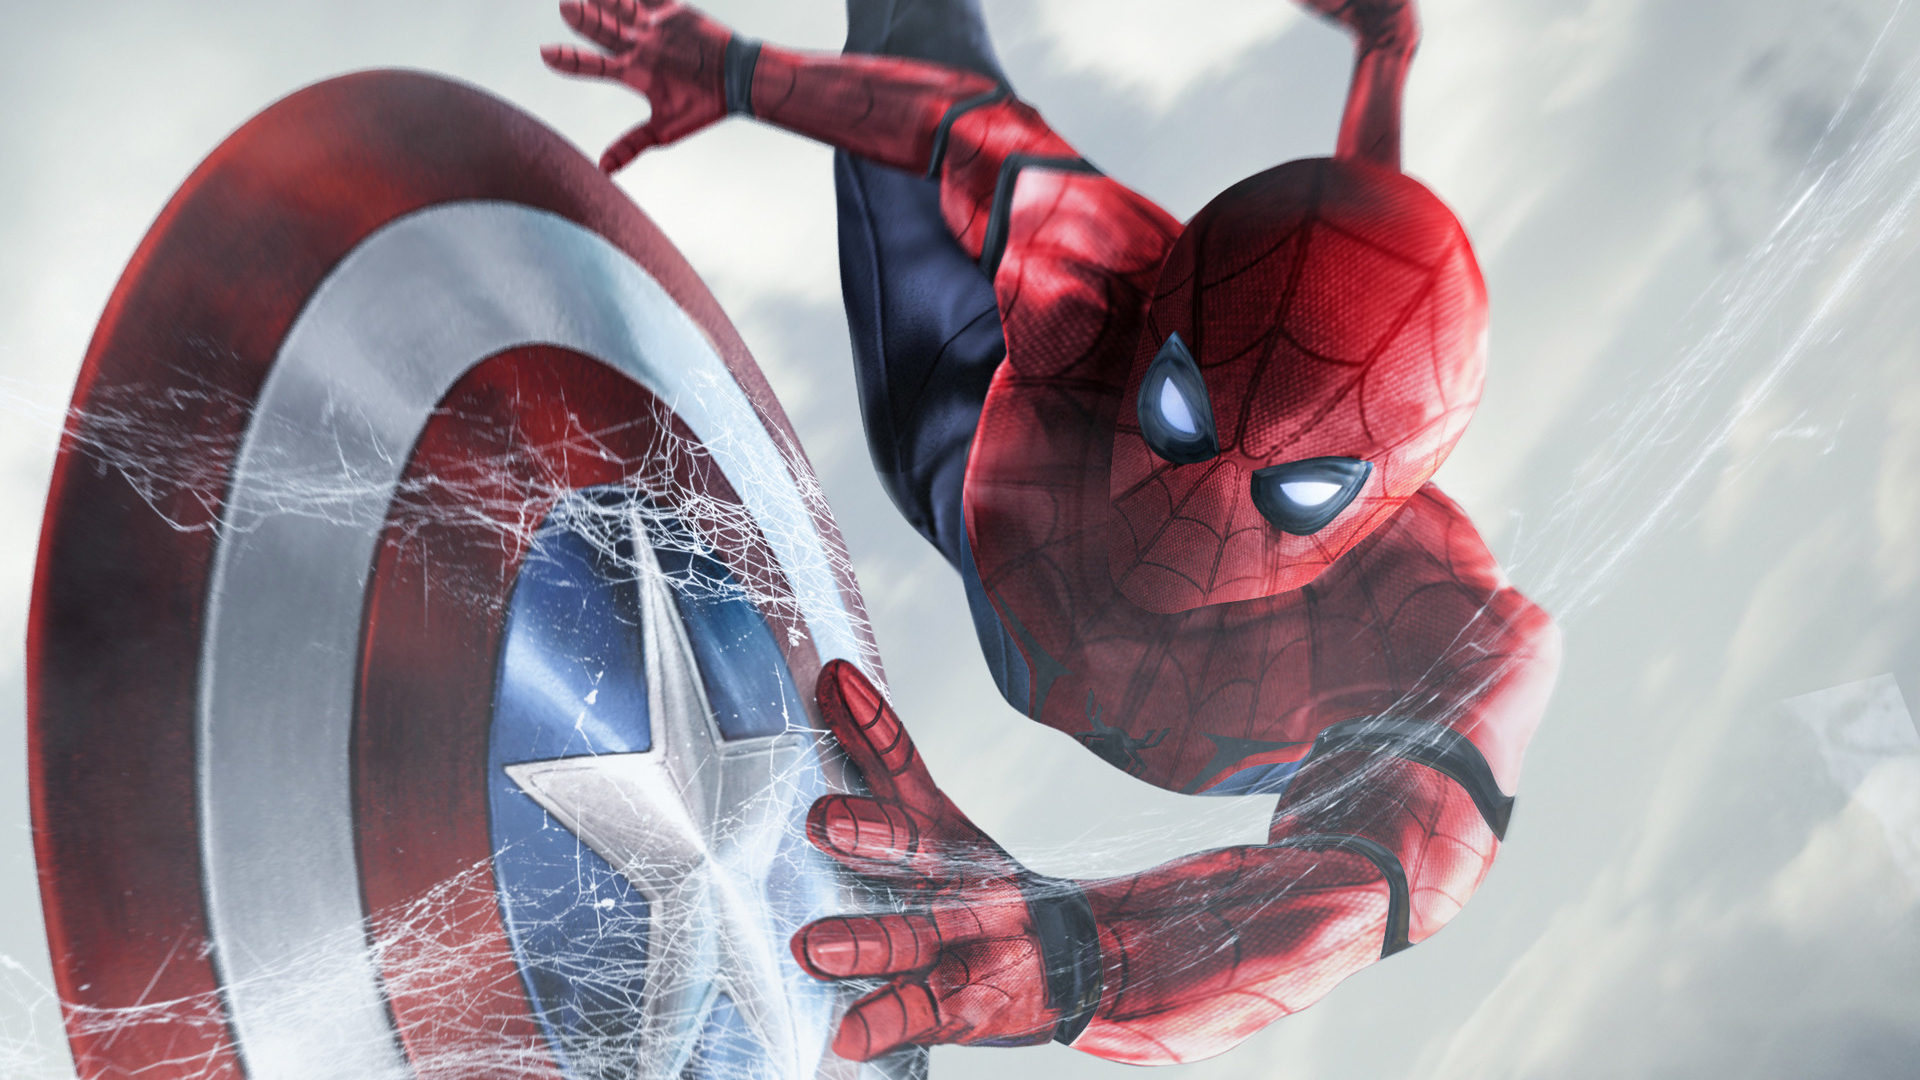 spiderman-catching-captain-america-shield-jo.jpg